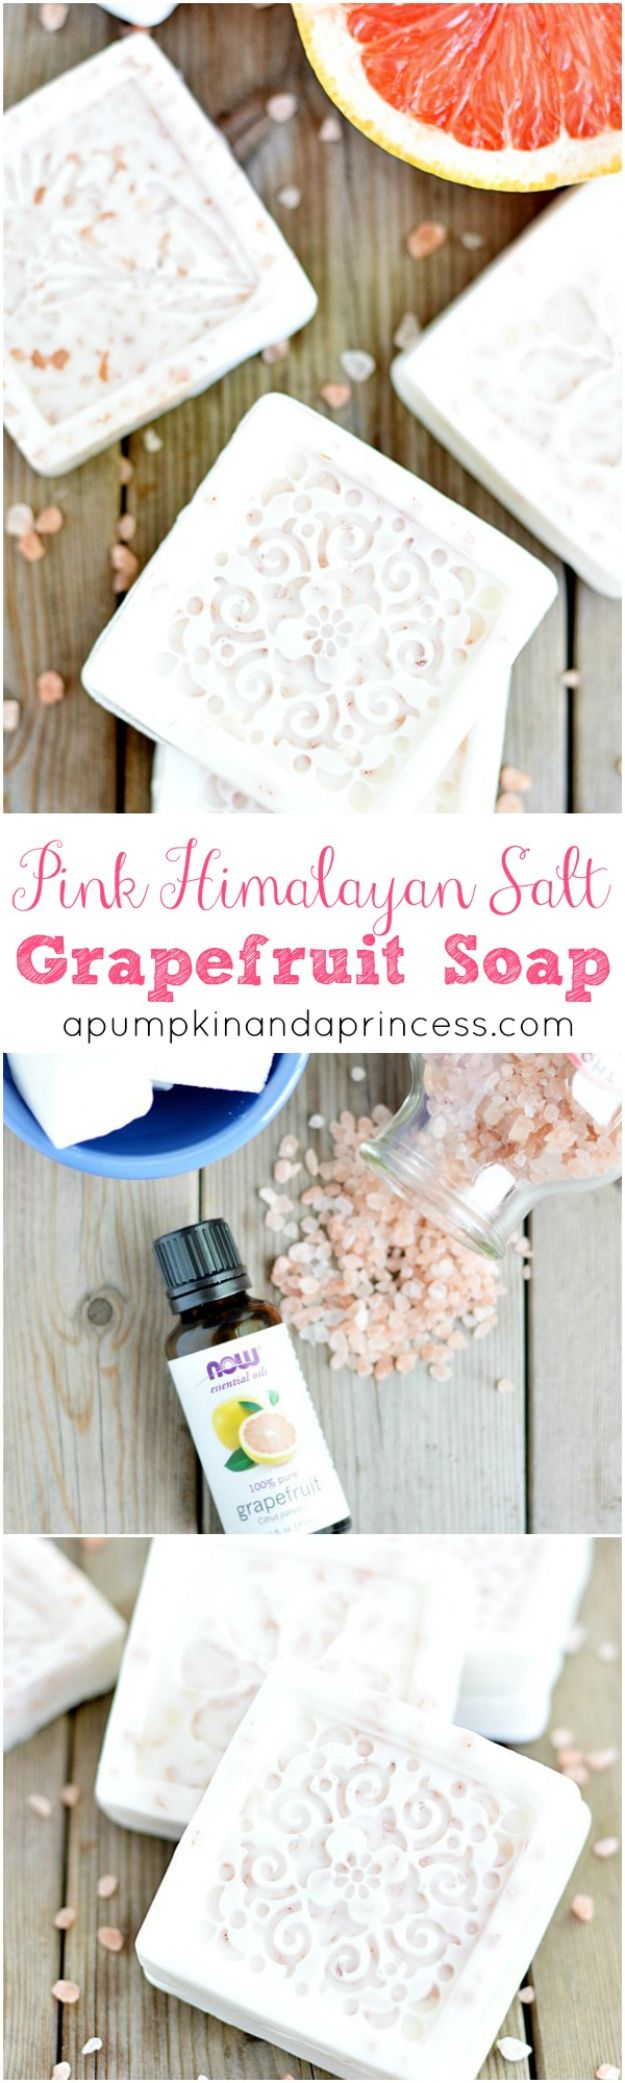 DIY Soap Recipes - Pink Himalayan Salt Grapefruit Soap - Melt and Pour, Homemade Recipe Without Lye - Natural Soap crafts for Kids - Shea Butter, Essential Oils, Easy Ides With 3 Ingredients - Pretty and Creative Soap Tutorials With Step by Step Instructions for Handmade Soap Making - Cool Stuff To Make and Sell On Etsy http://diyjoy.com/diy-soap-recipes